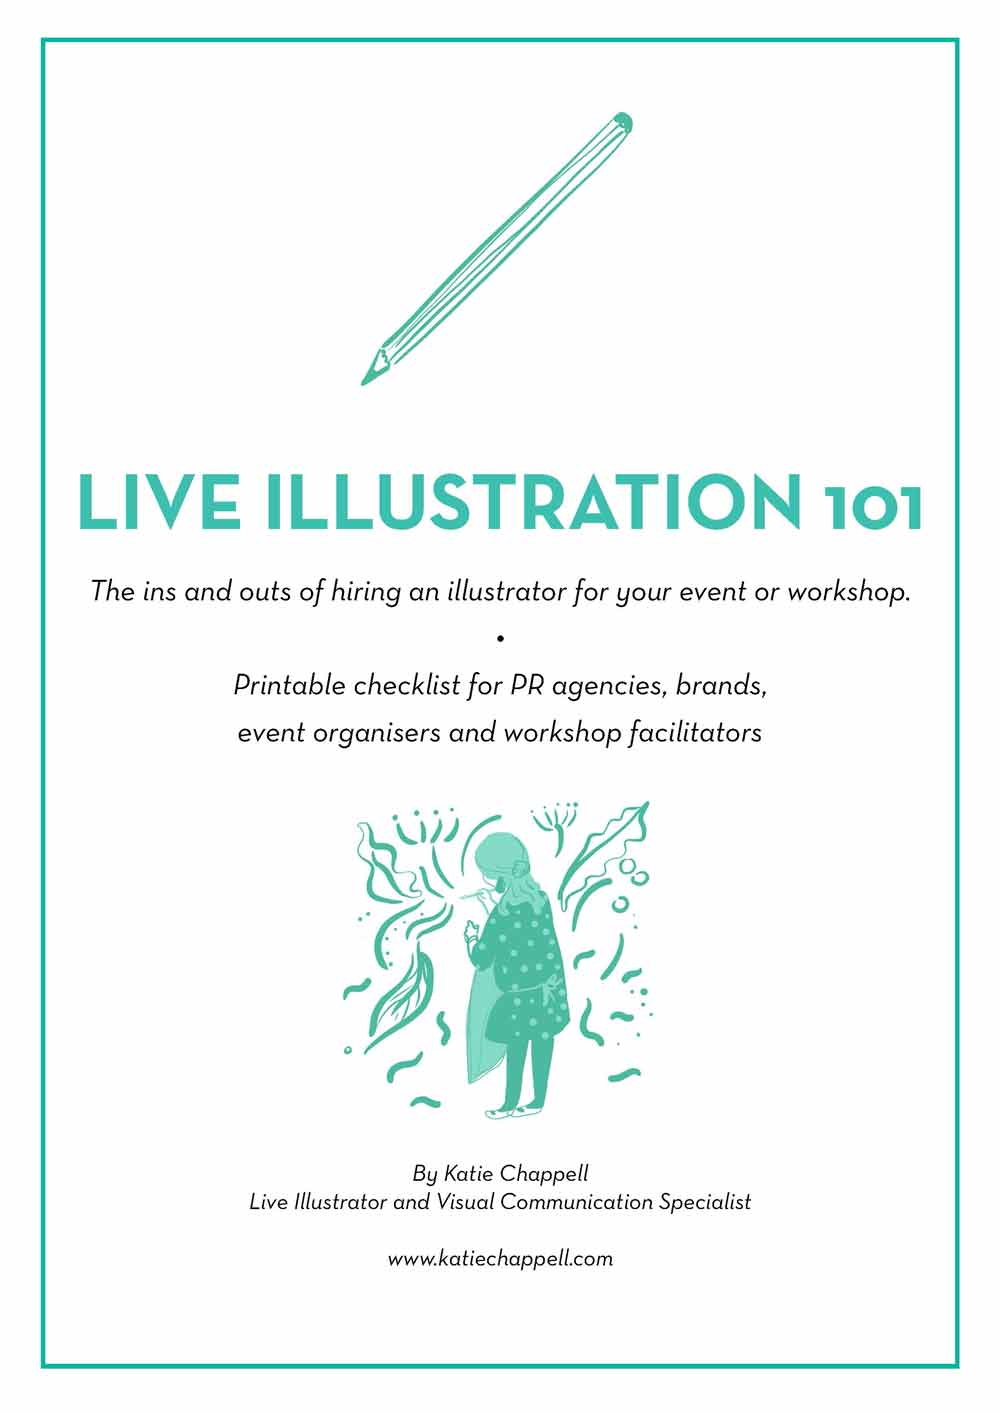 Live-Event-Illustration-101---how-to-hire-a-graphic-recorder.jpg